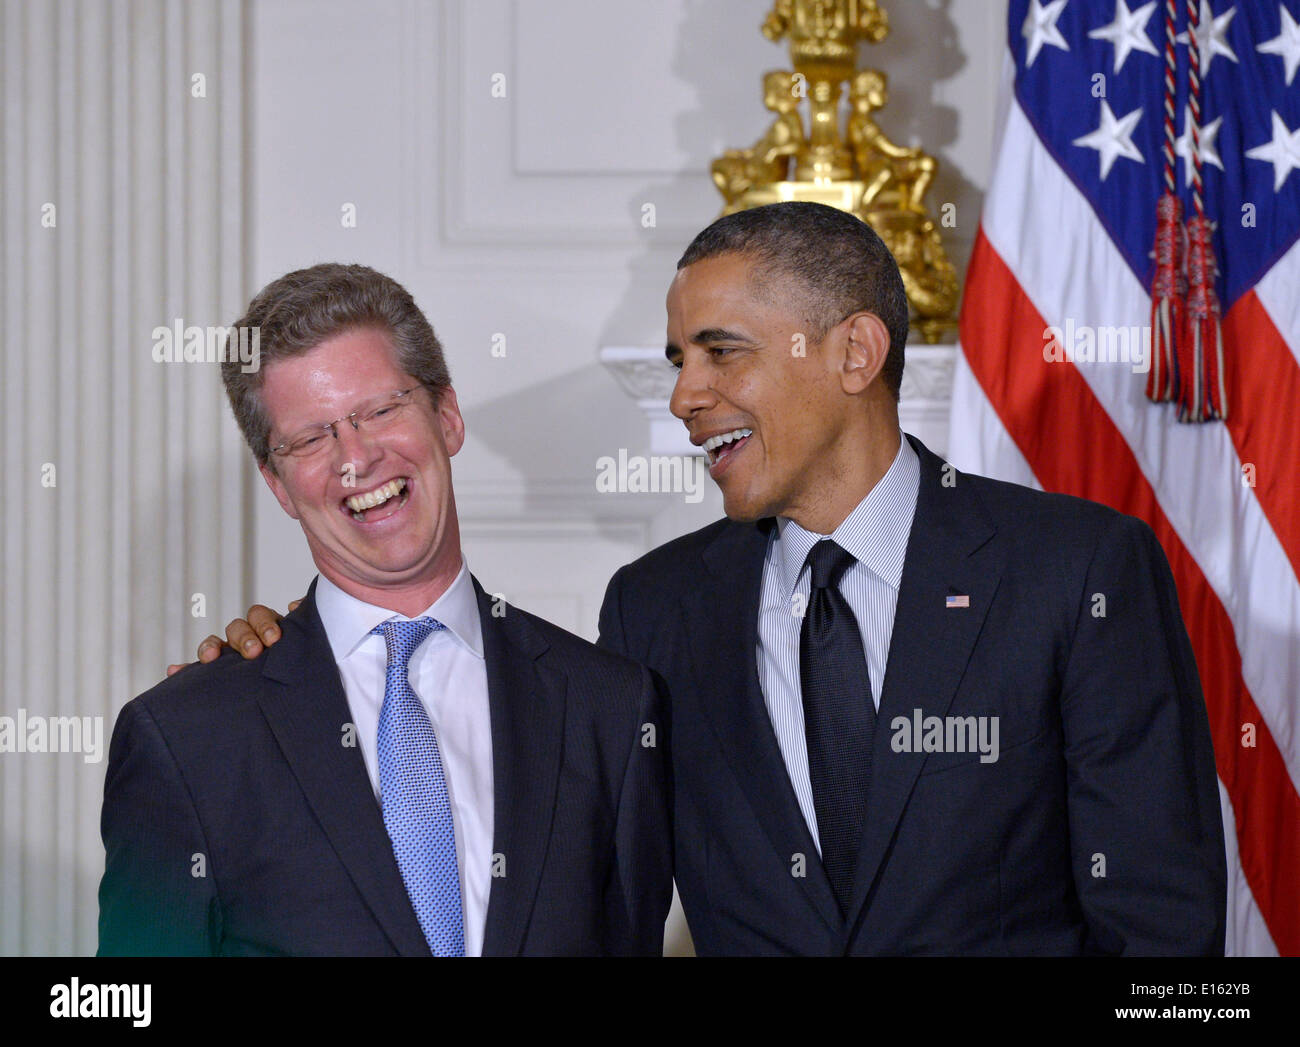 Washington, DC, USA. 23rd May, 2014. U.S. President Barack Obama (R) laugh with current Department of Housing and Stock Photo